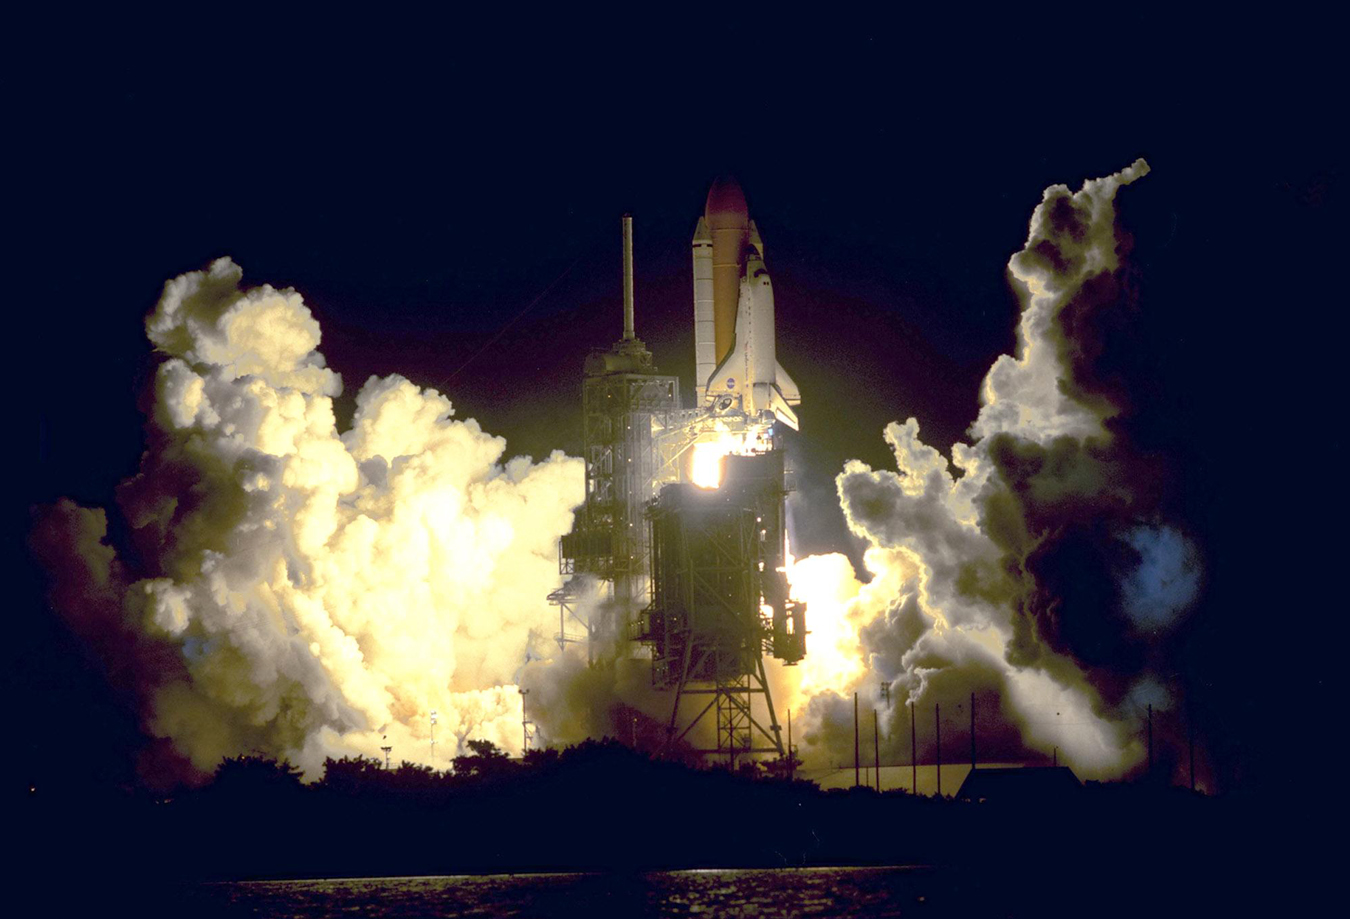 nasa 100th space shuttle mission - photo #30